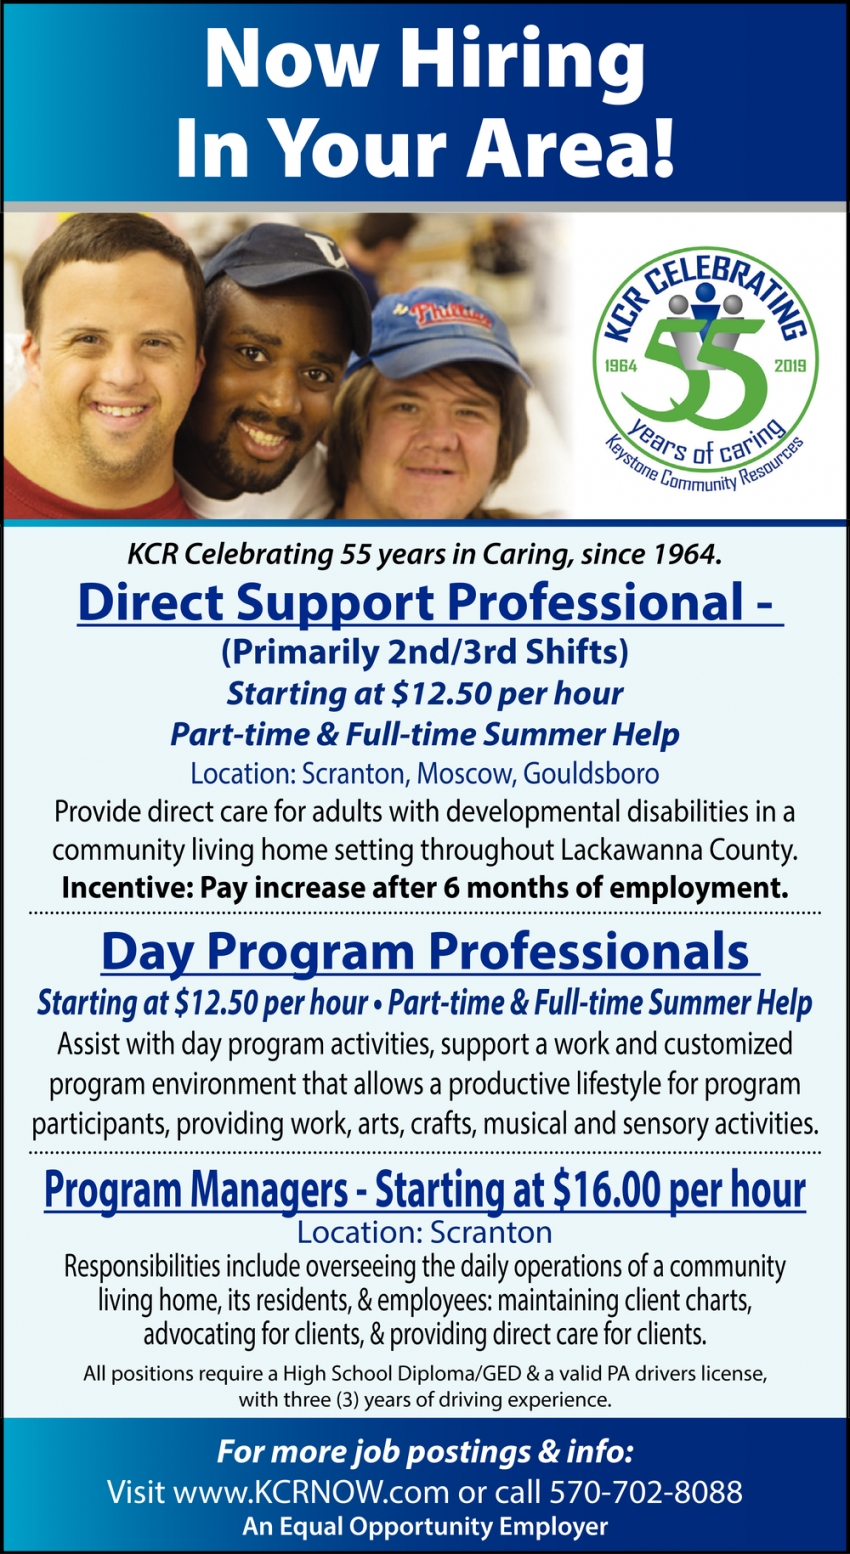 Direct Support Professional - Day Program Professionals